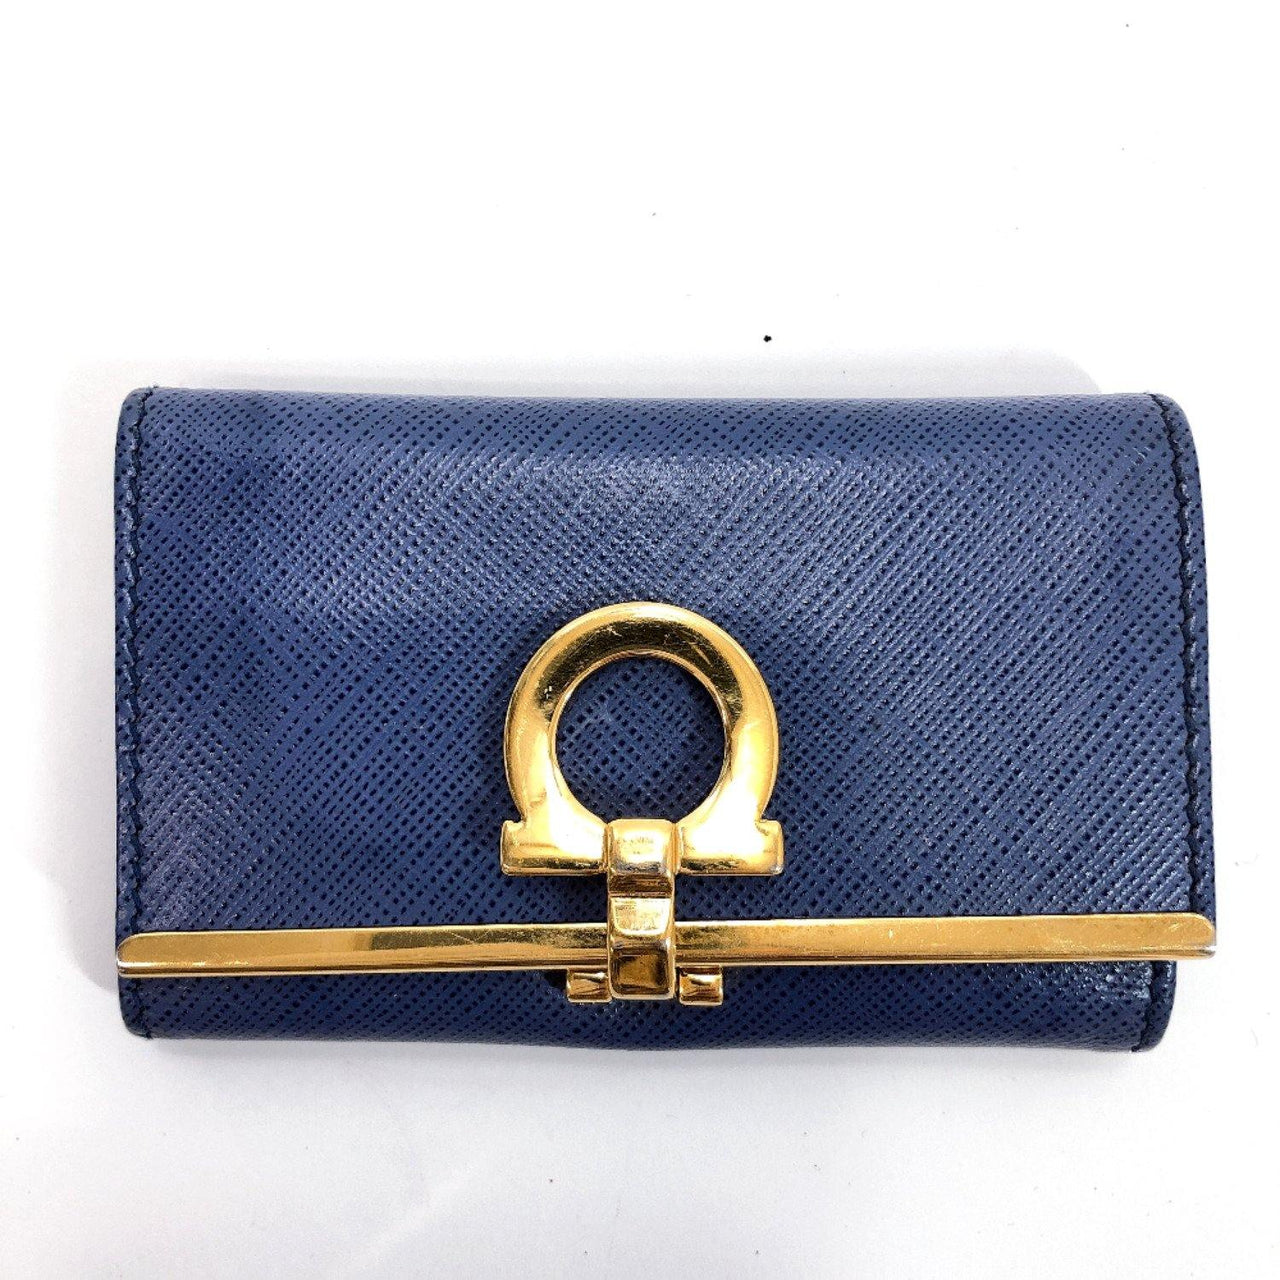 Salvatore Ferragamo key holder Gancini leather blue unisex Used - JP-BRANDS.com